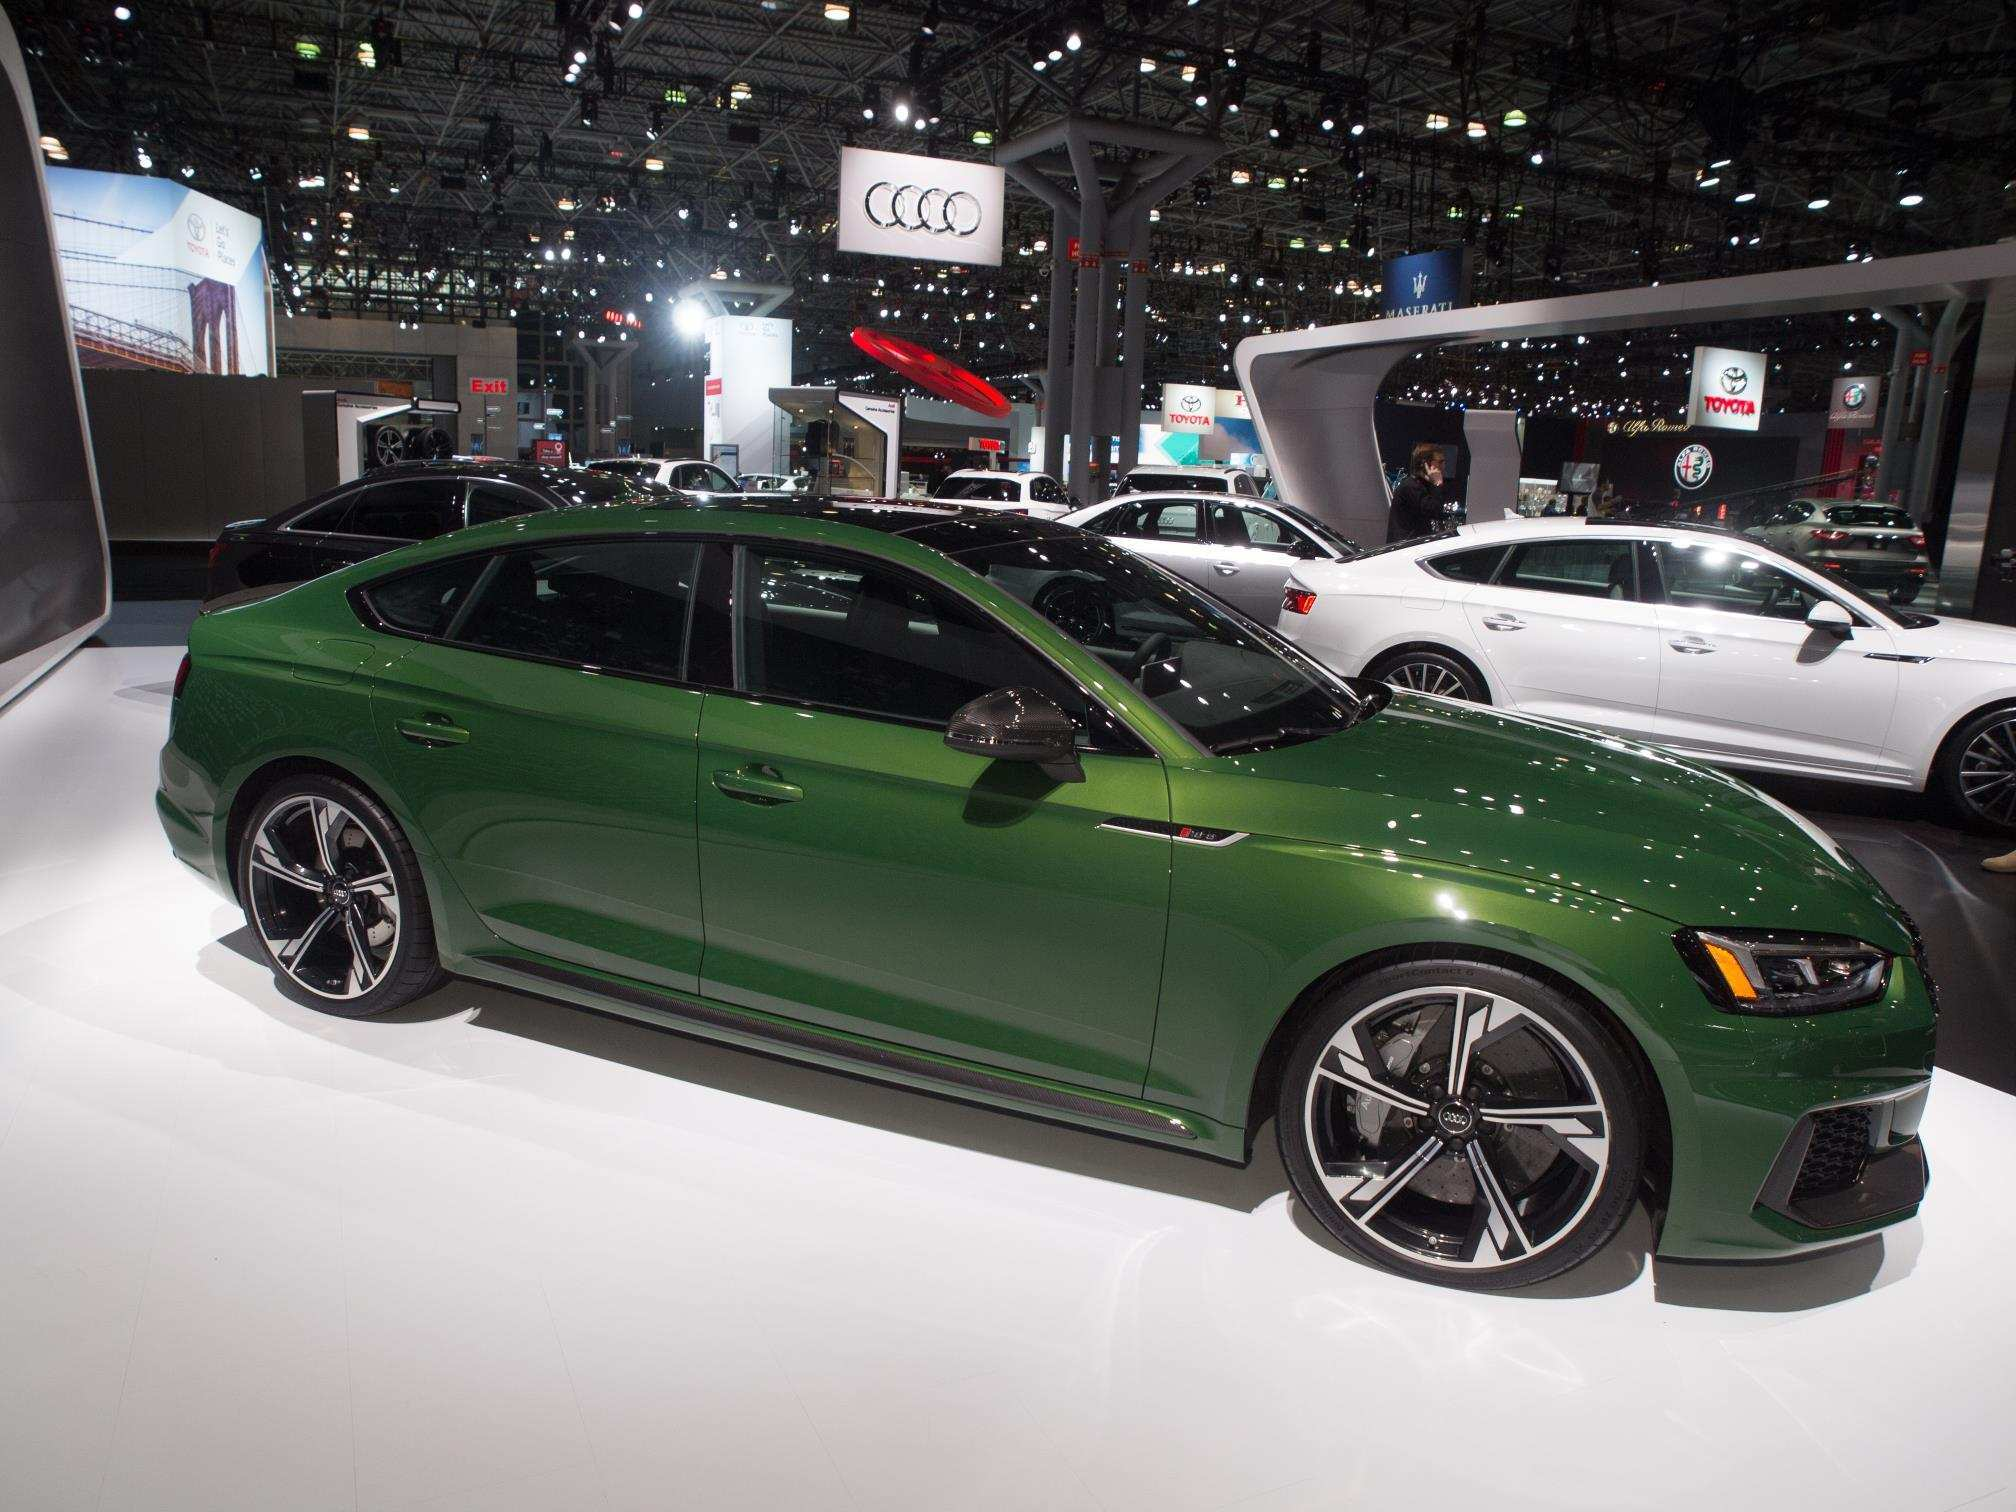 11 New 2019 Audi Green Images